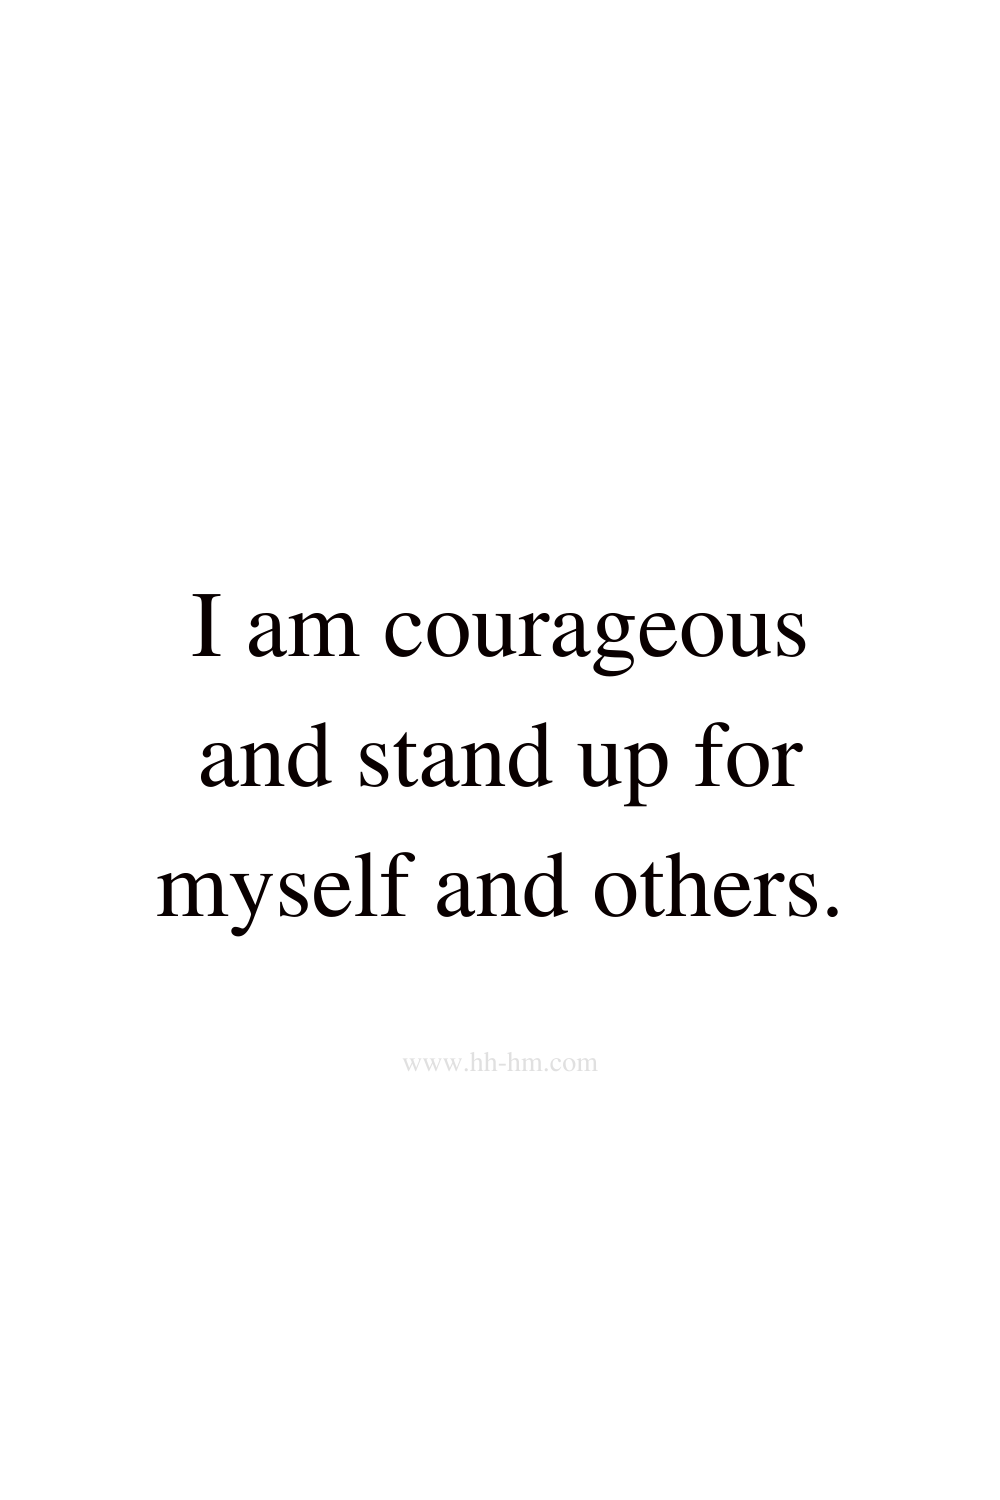 I am courageous and stand up for myself and others self love and self confidence morning affirmations